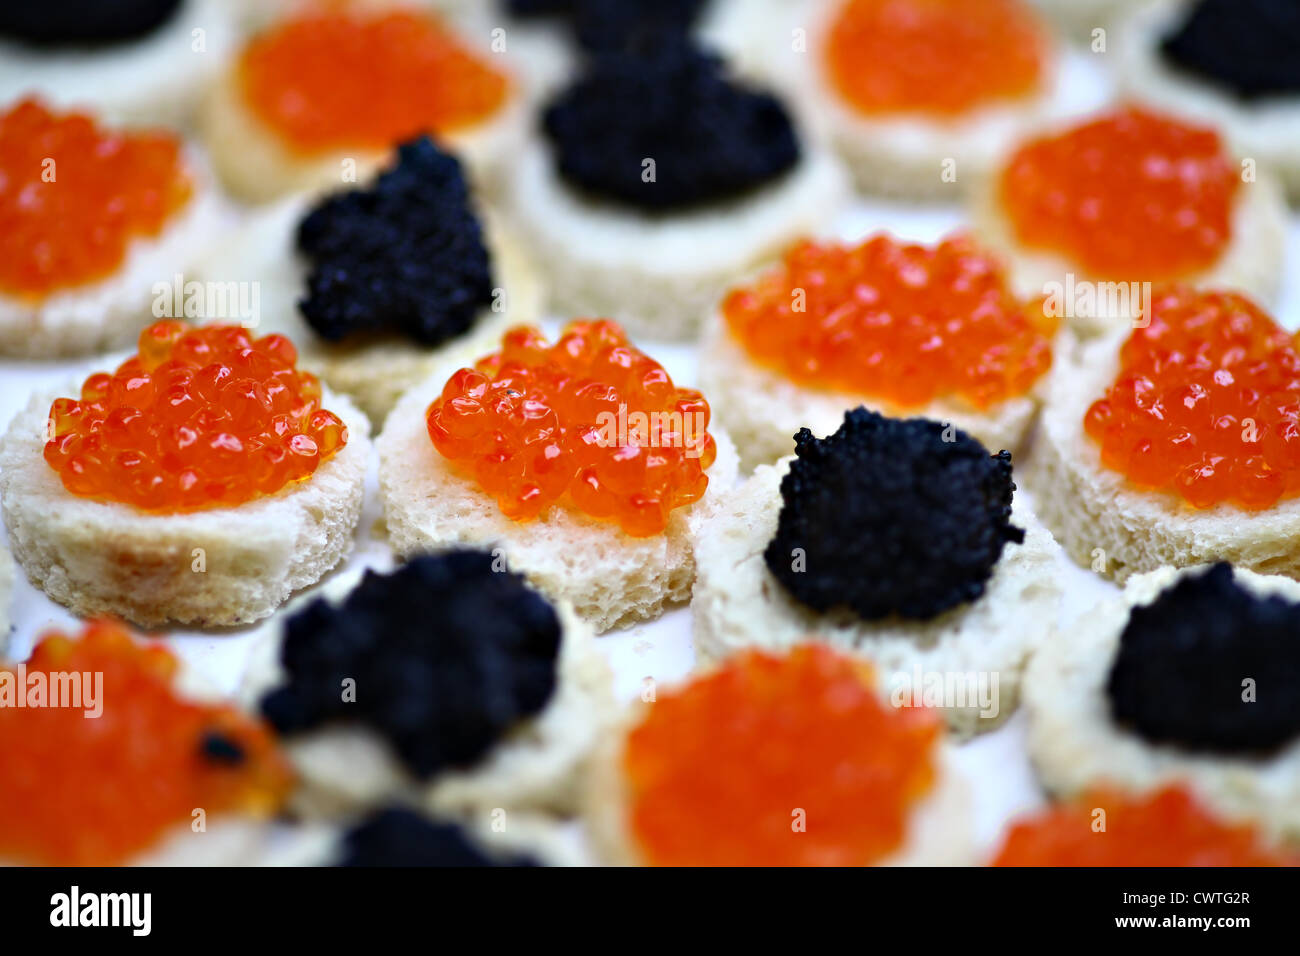 Red and black caviar on slices of bread - Stock Image